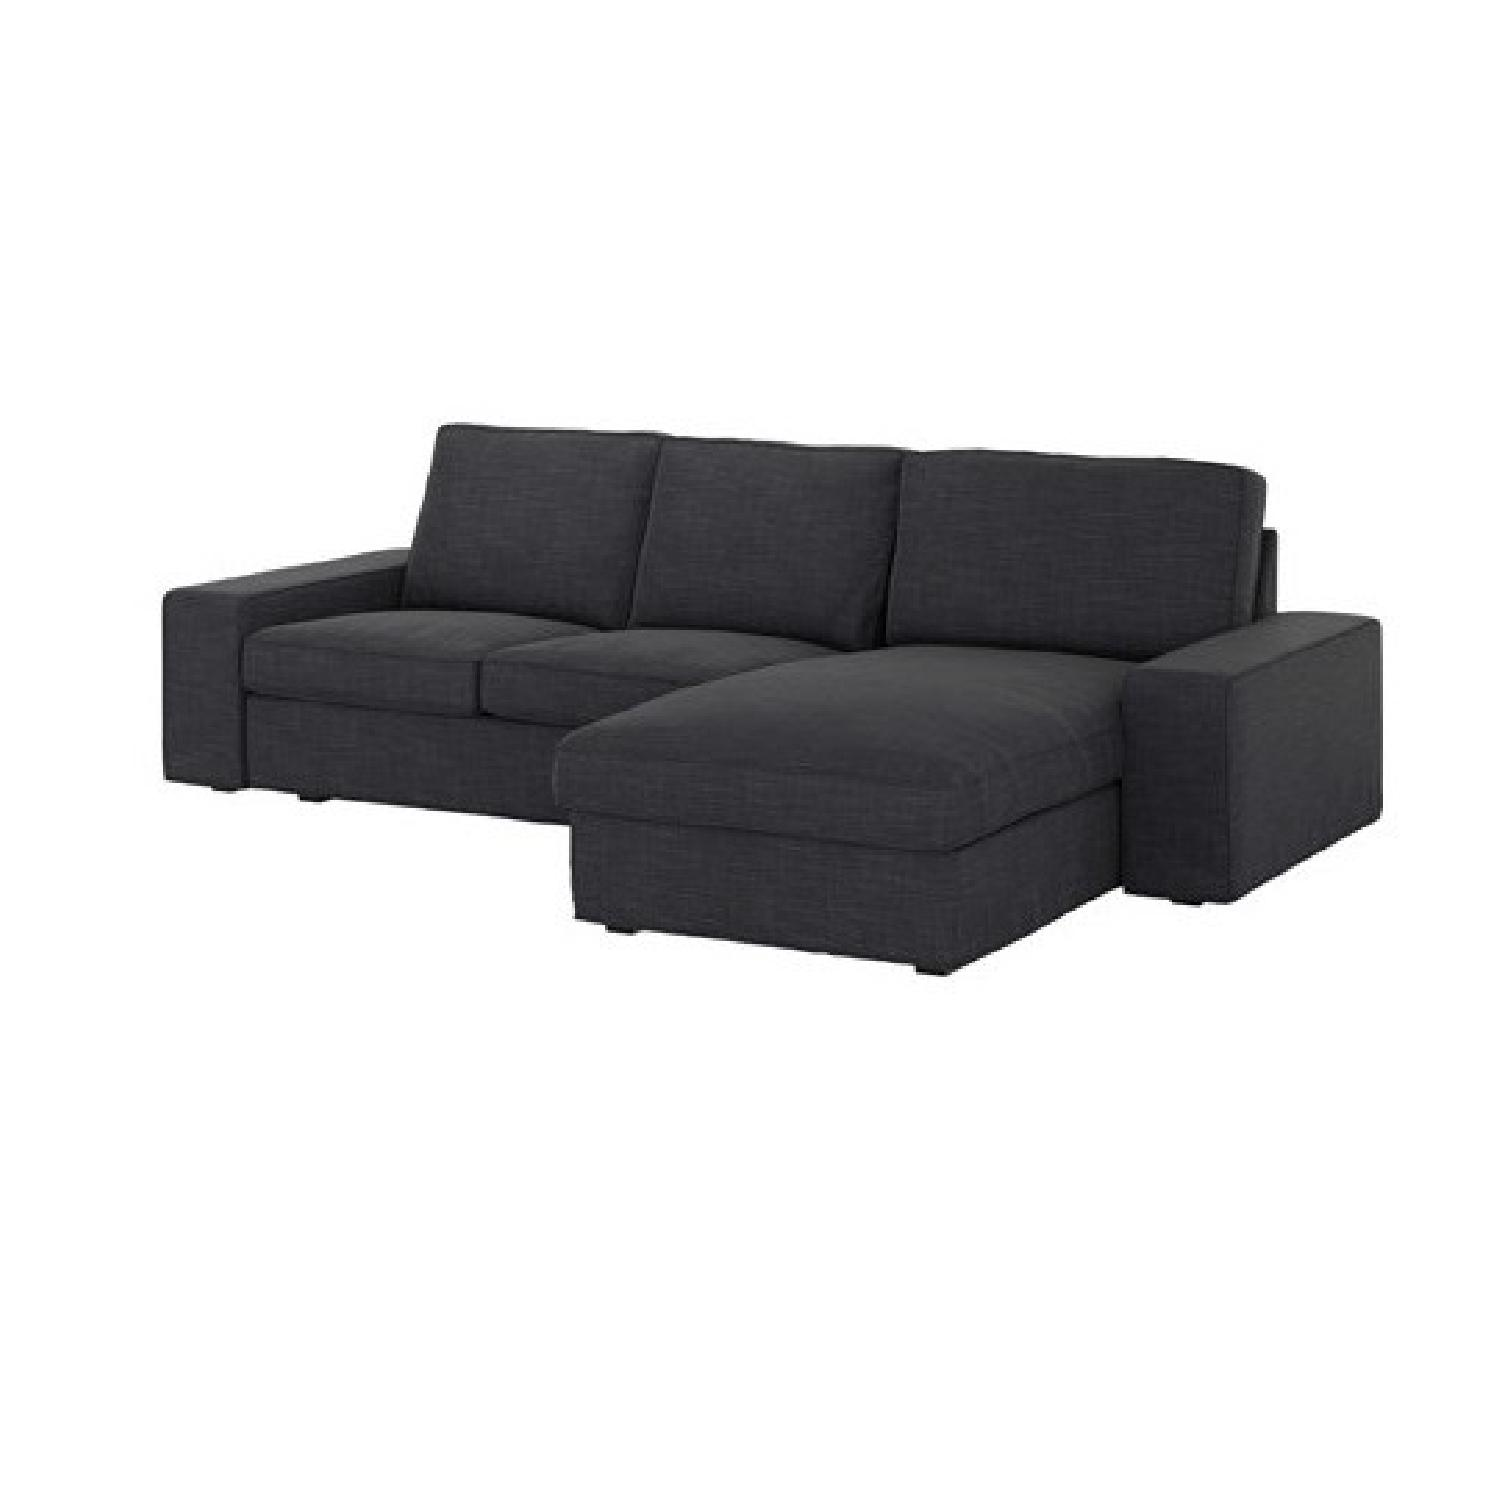 Ikea Kivik Sectional Sofa W/ Chaise In Dark Blue/Grey ...